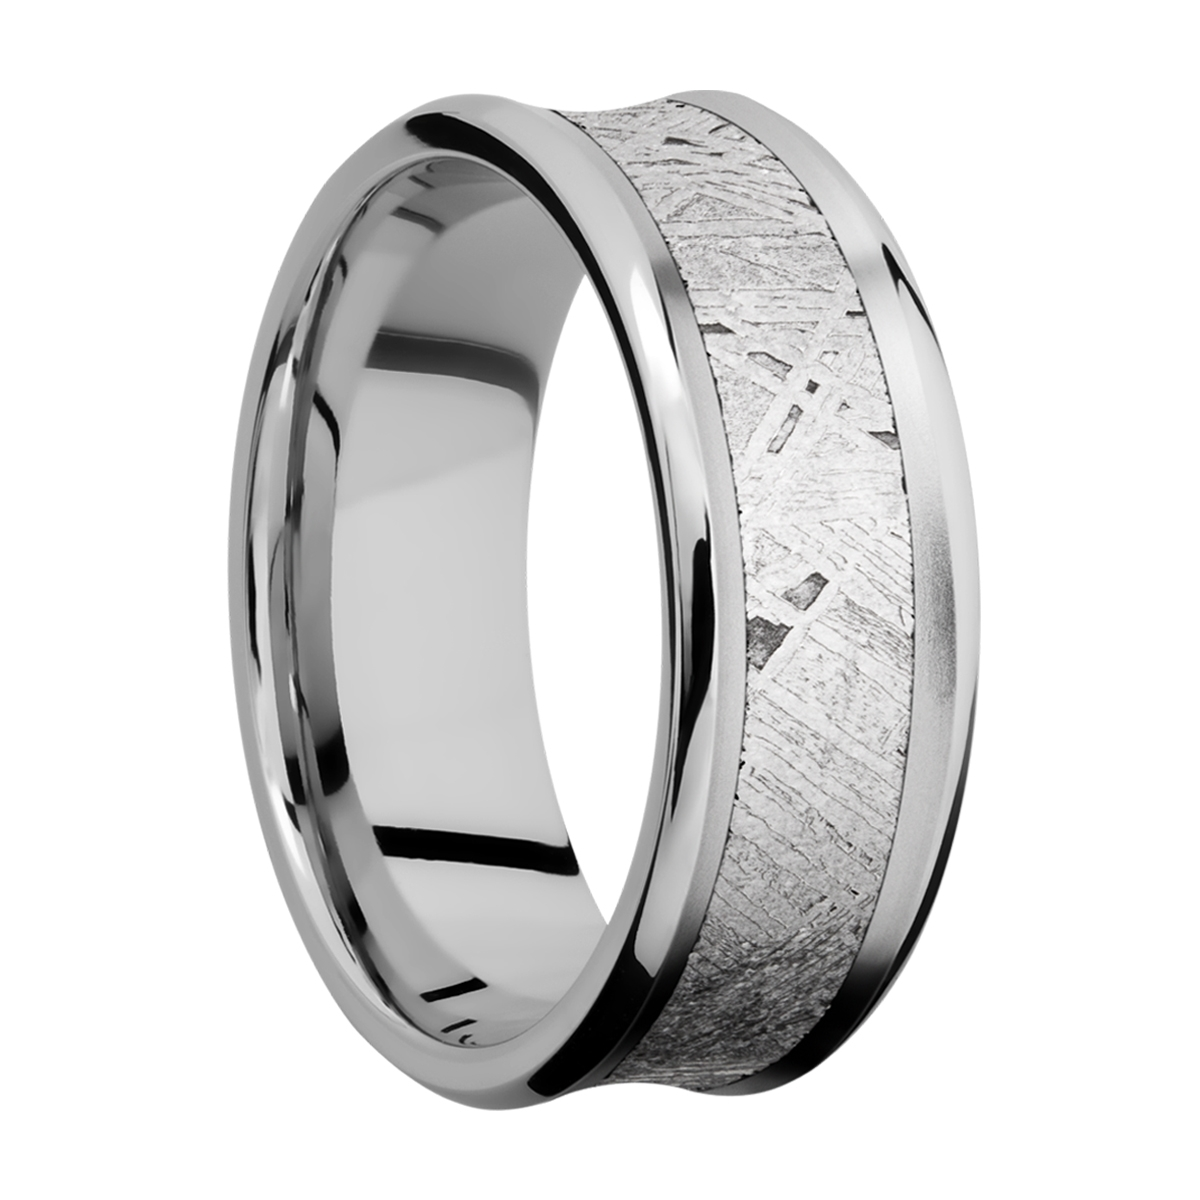 Lashbrook CC8CB15/METEORITE Cobalt Chrome Wedding Ring or Band Alternative View 1